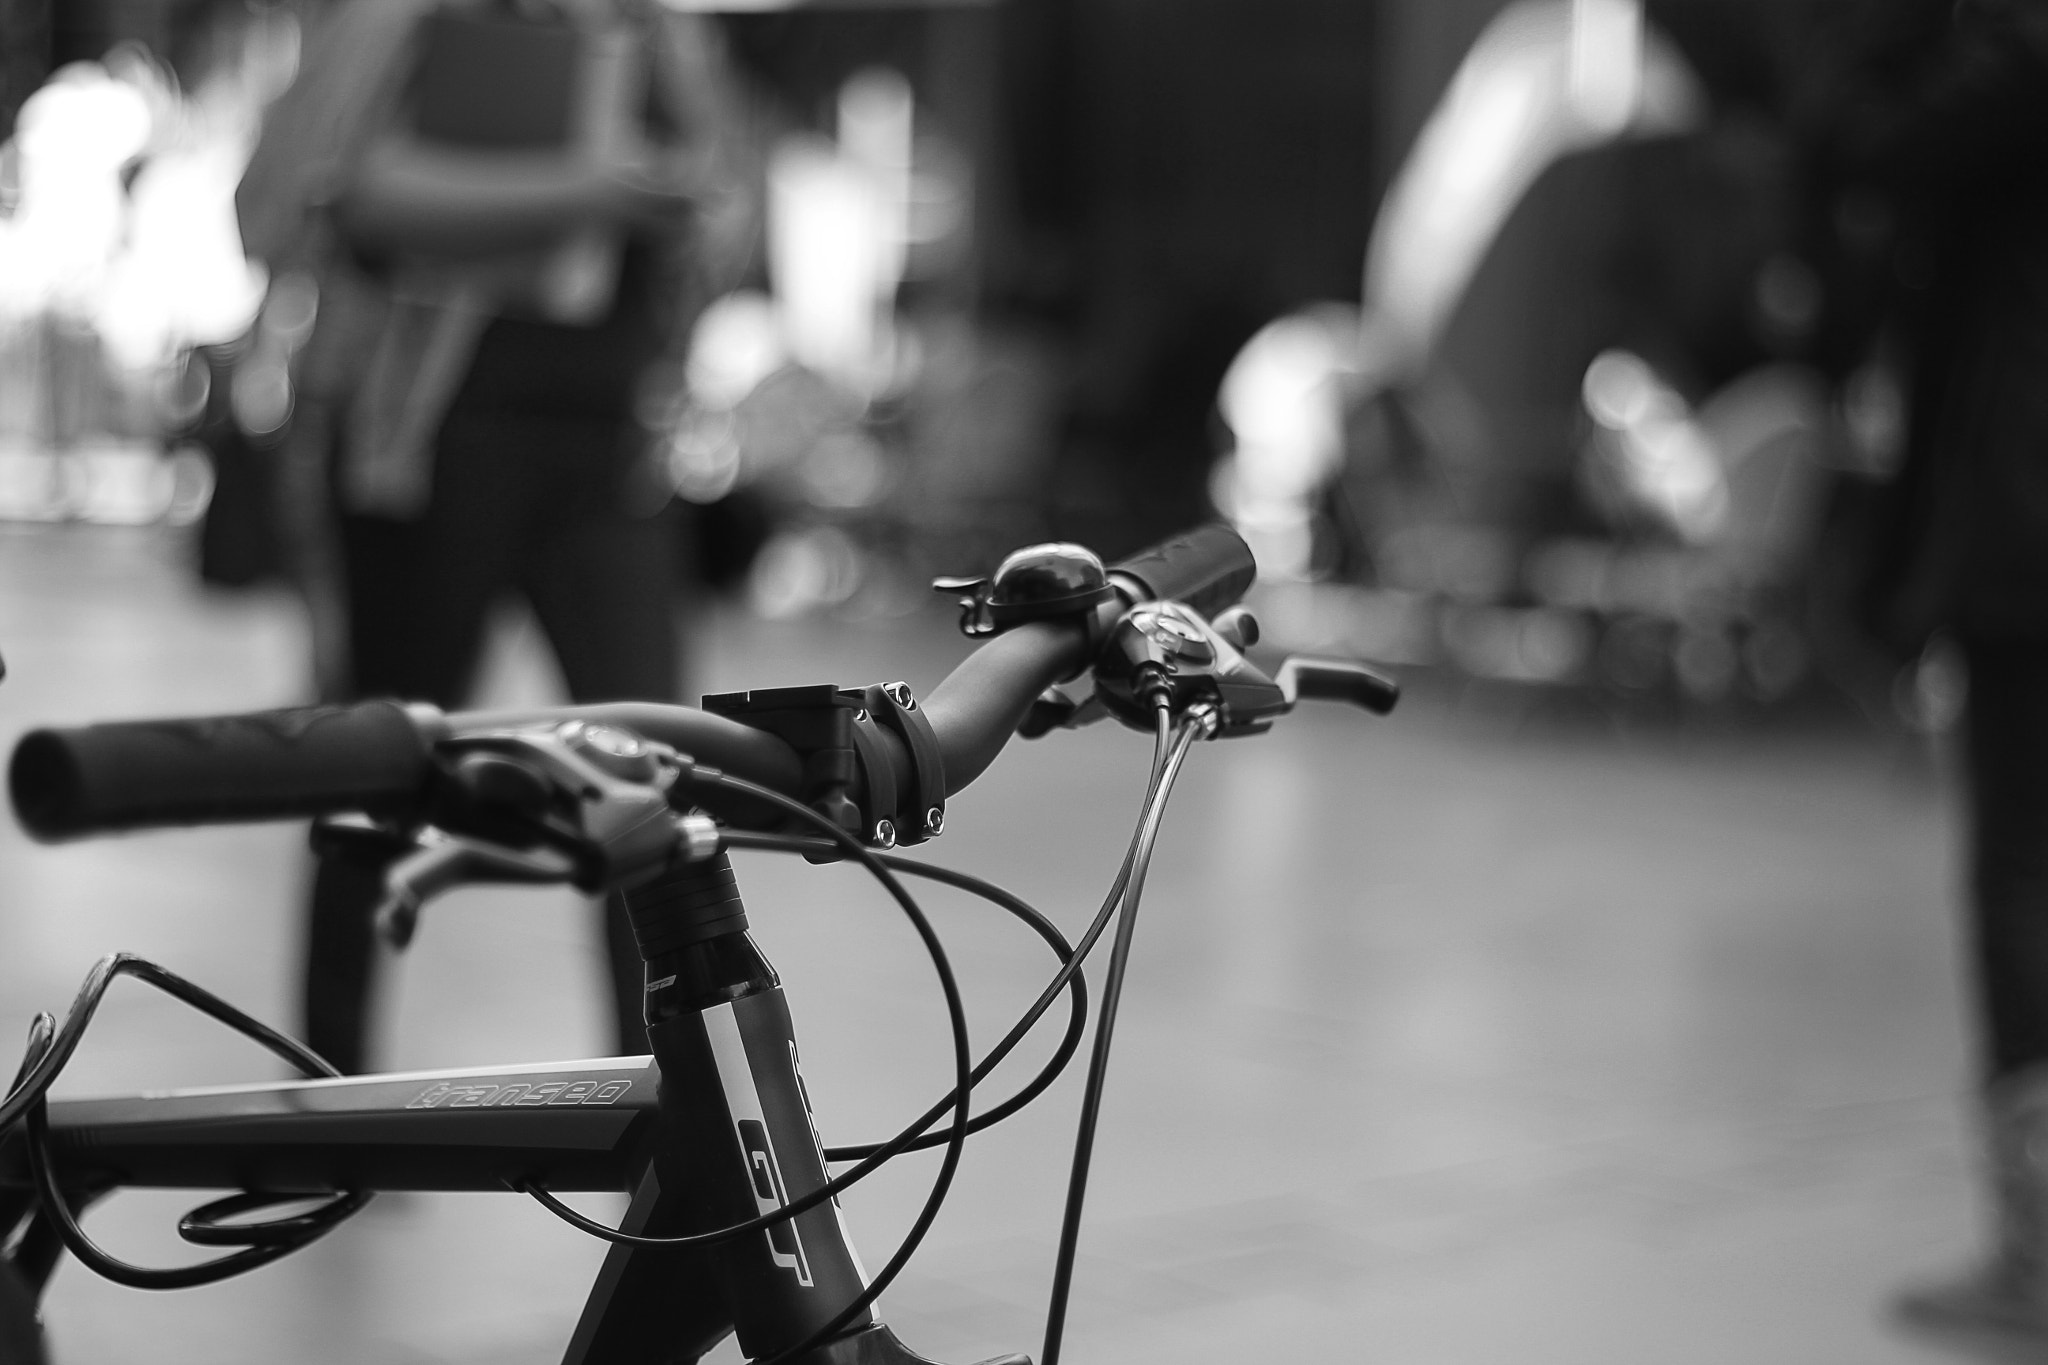 Photograph my bike by Selim Basak on 500px